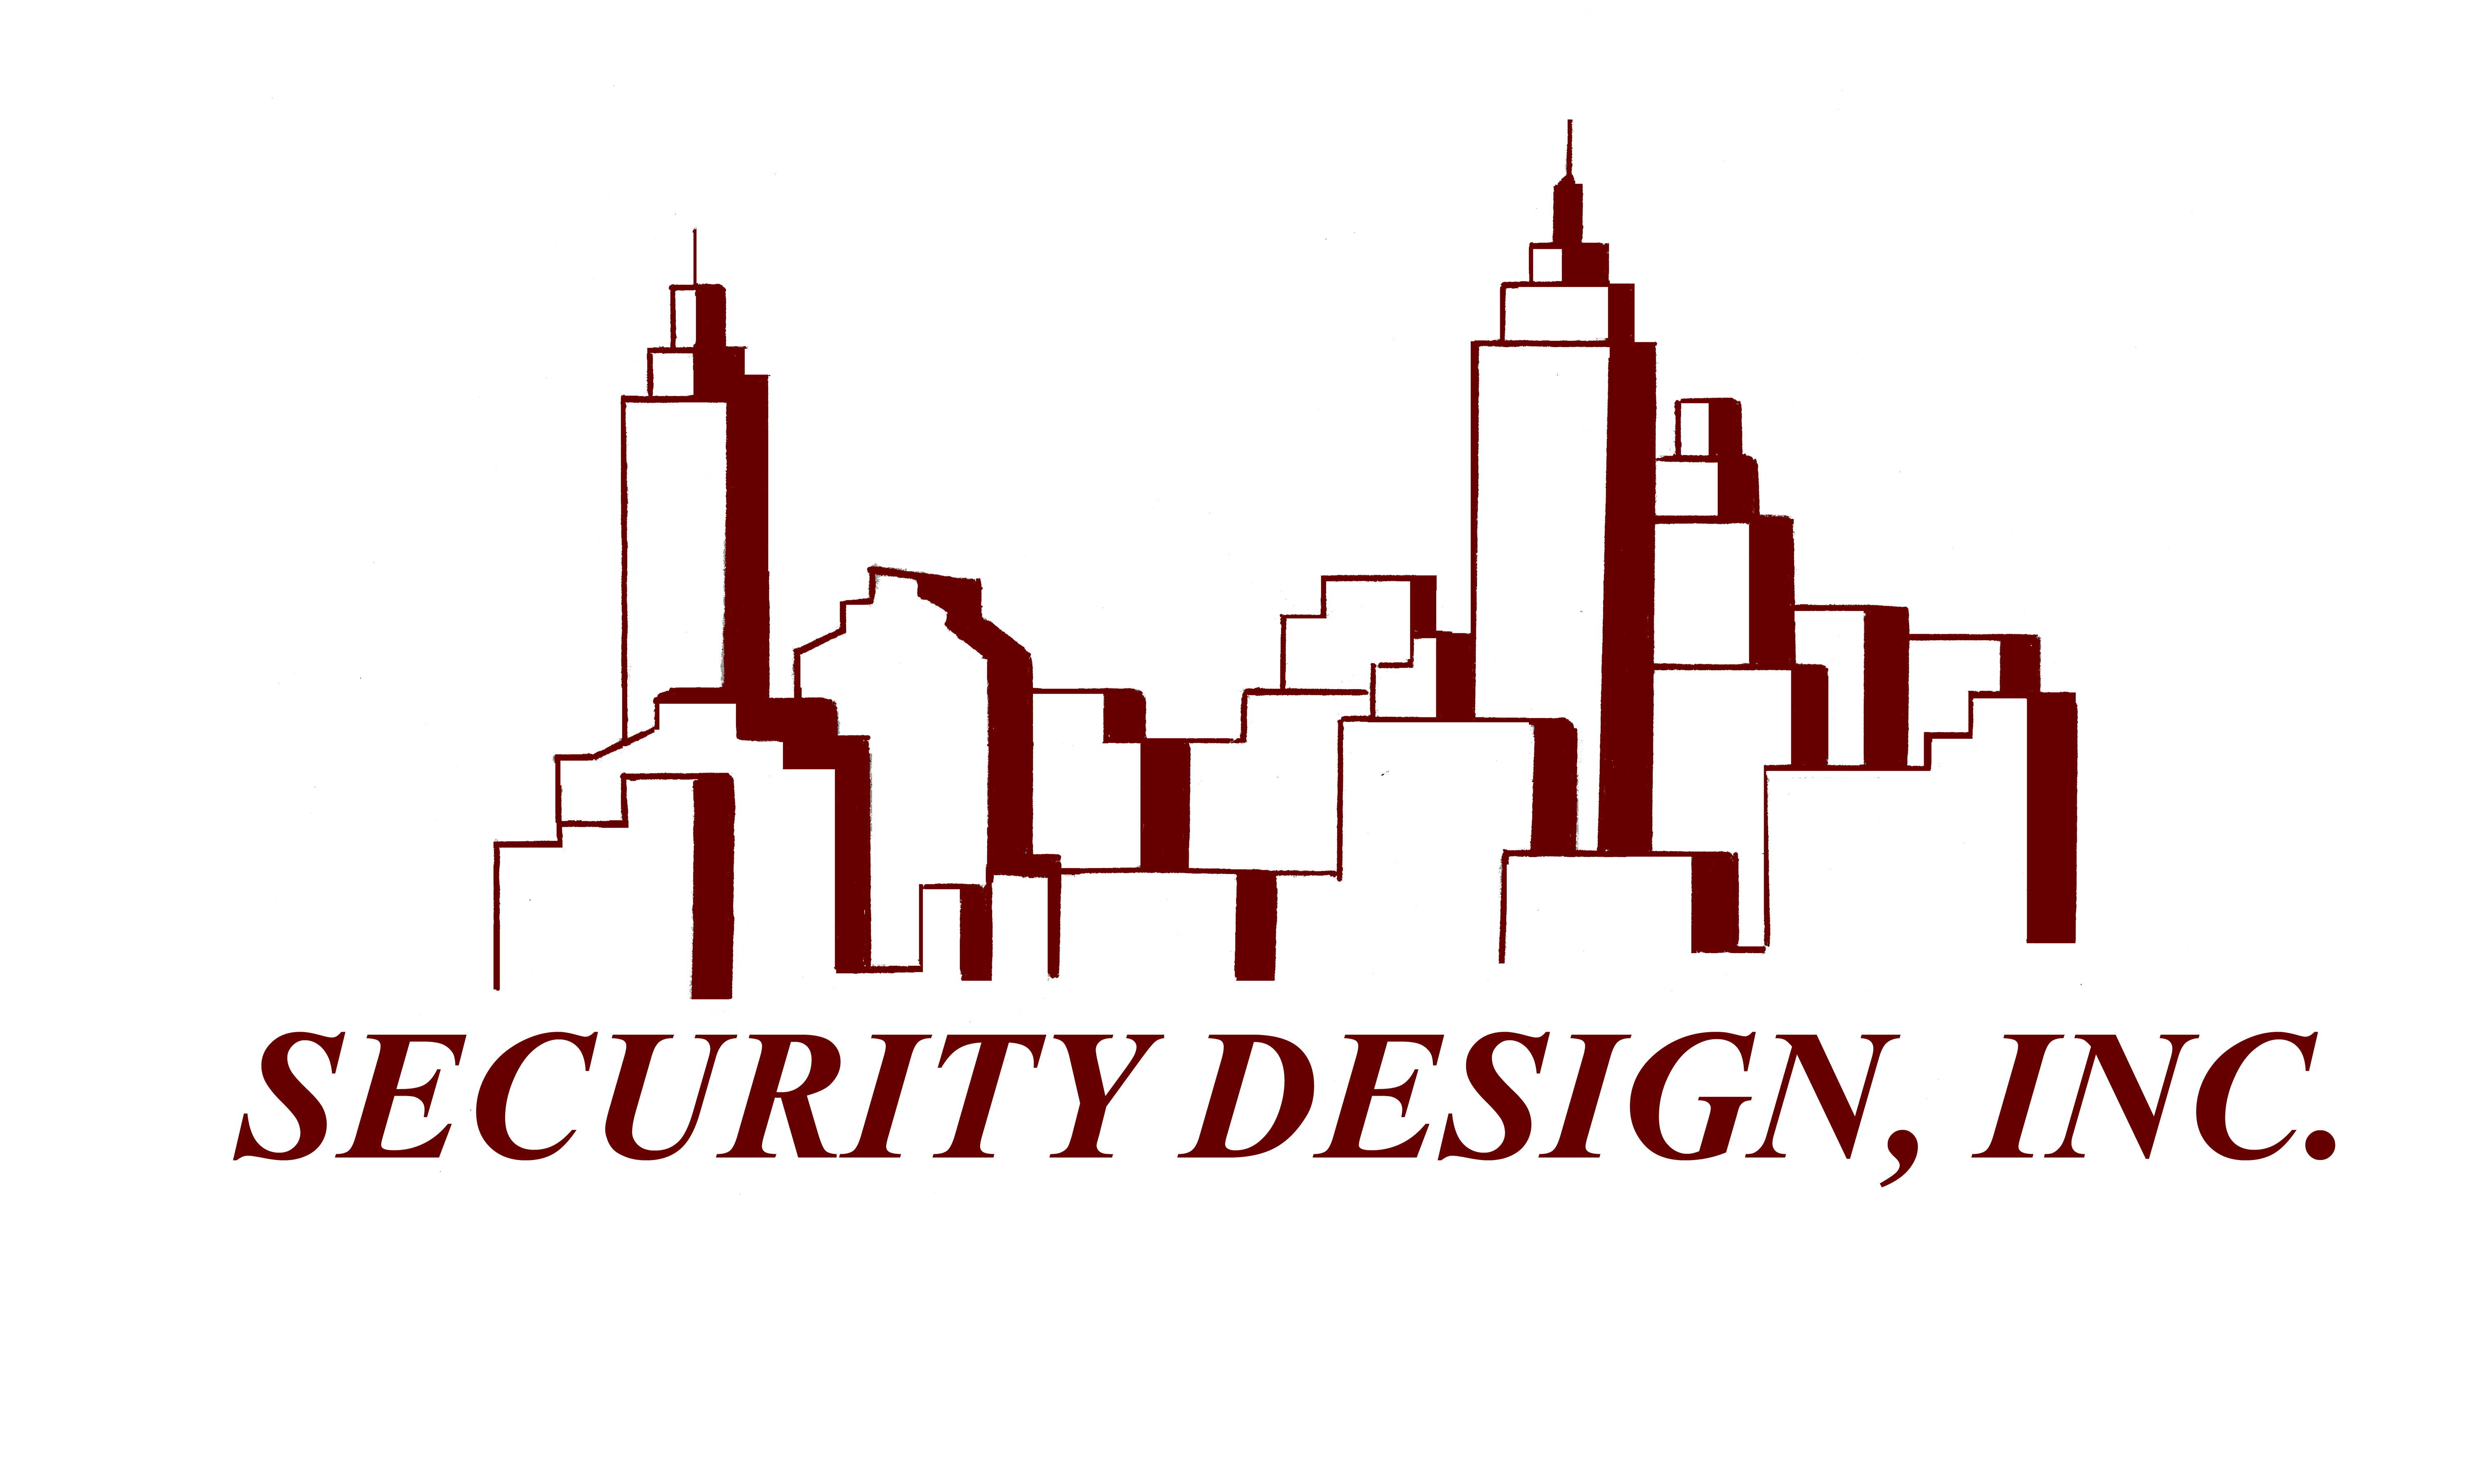 SECURITY DESIGN, INC.jpg